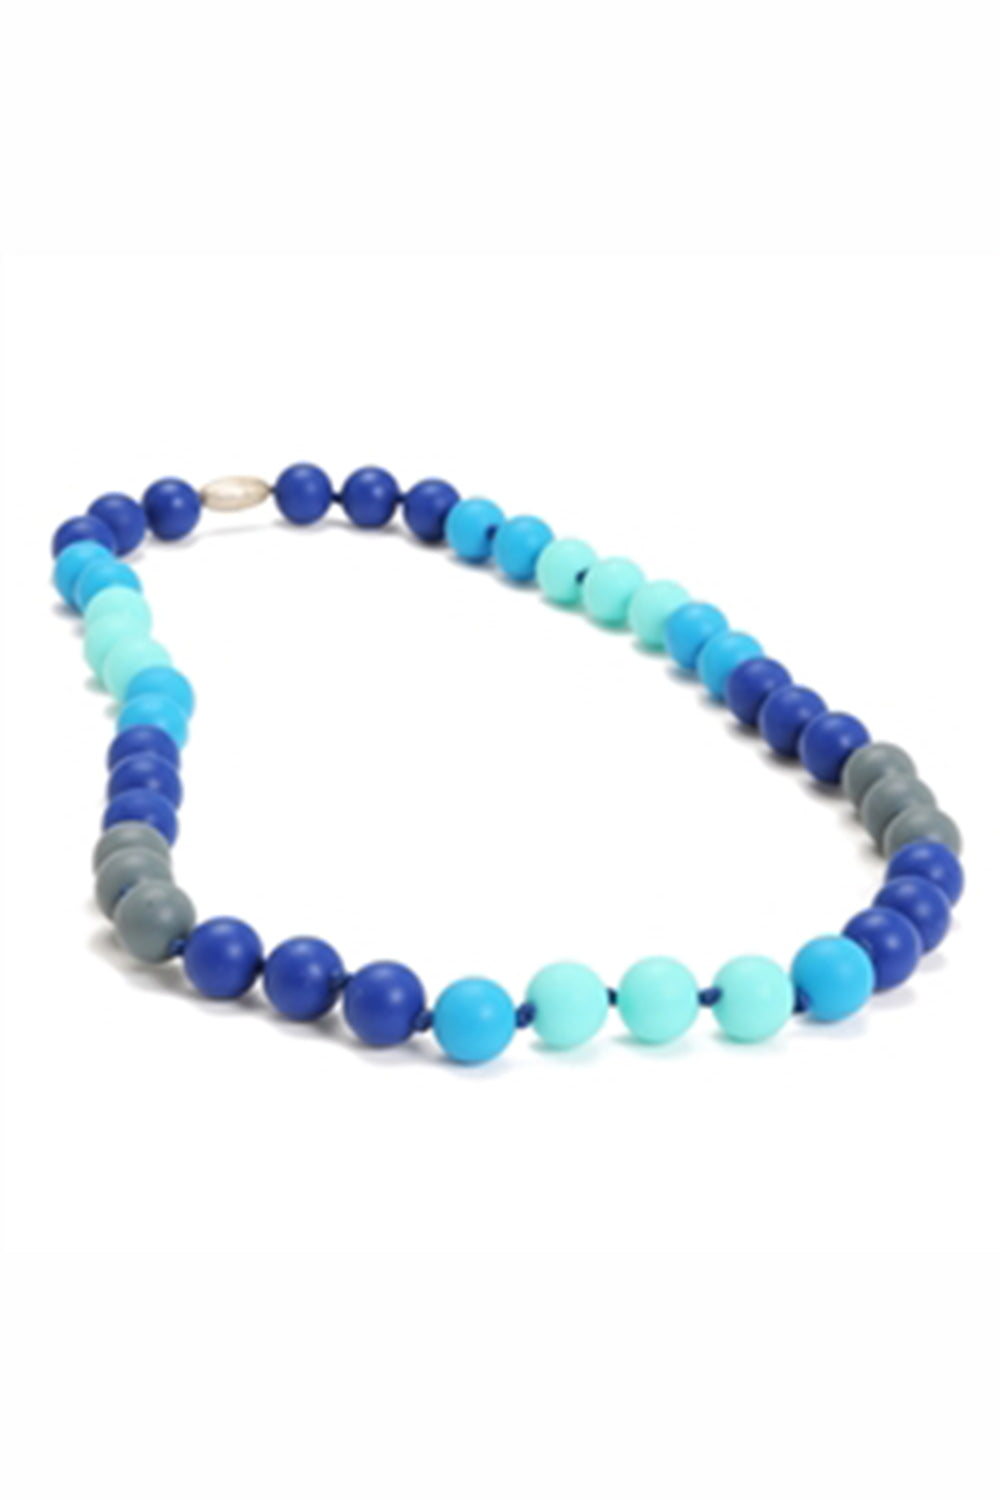 Bleecker Teething Necklace - Turquoise